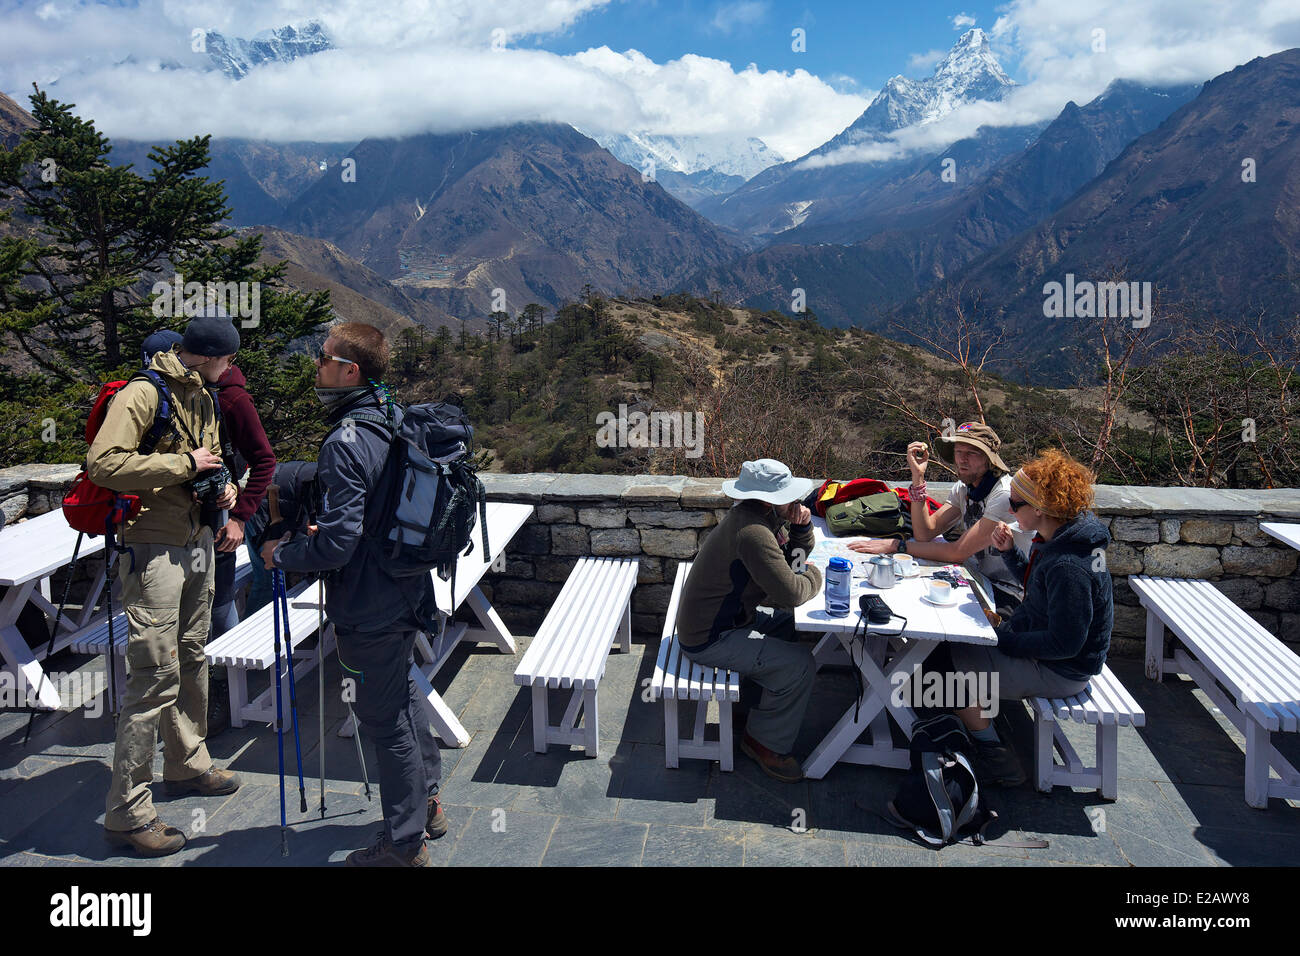 Trekkers at Everest View Hotel, Sagarmatha National Park, Nepal, Asia - Stock Image